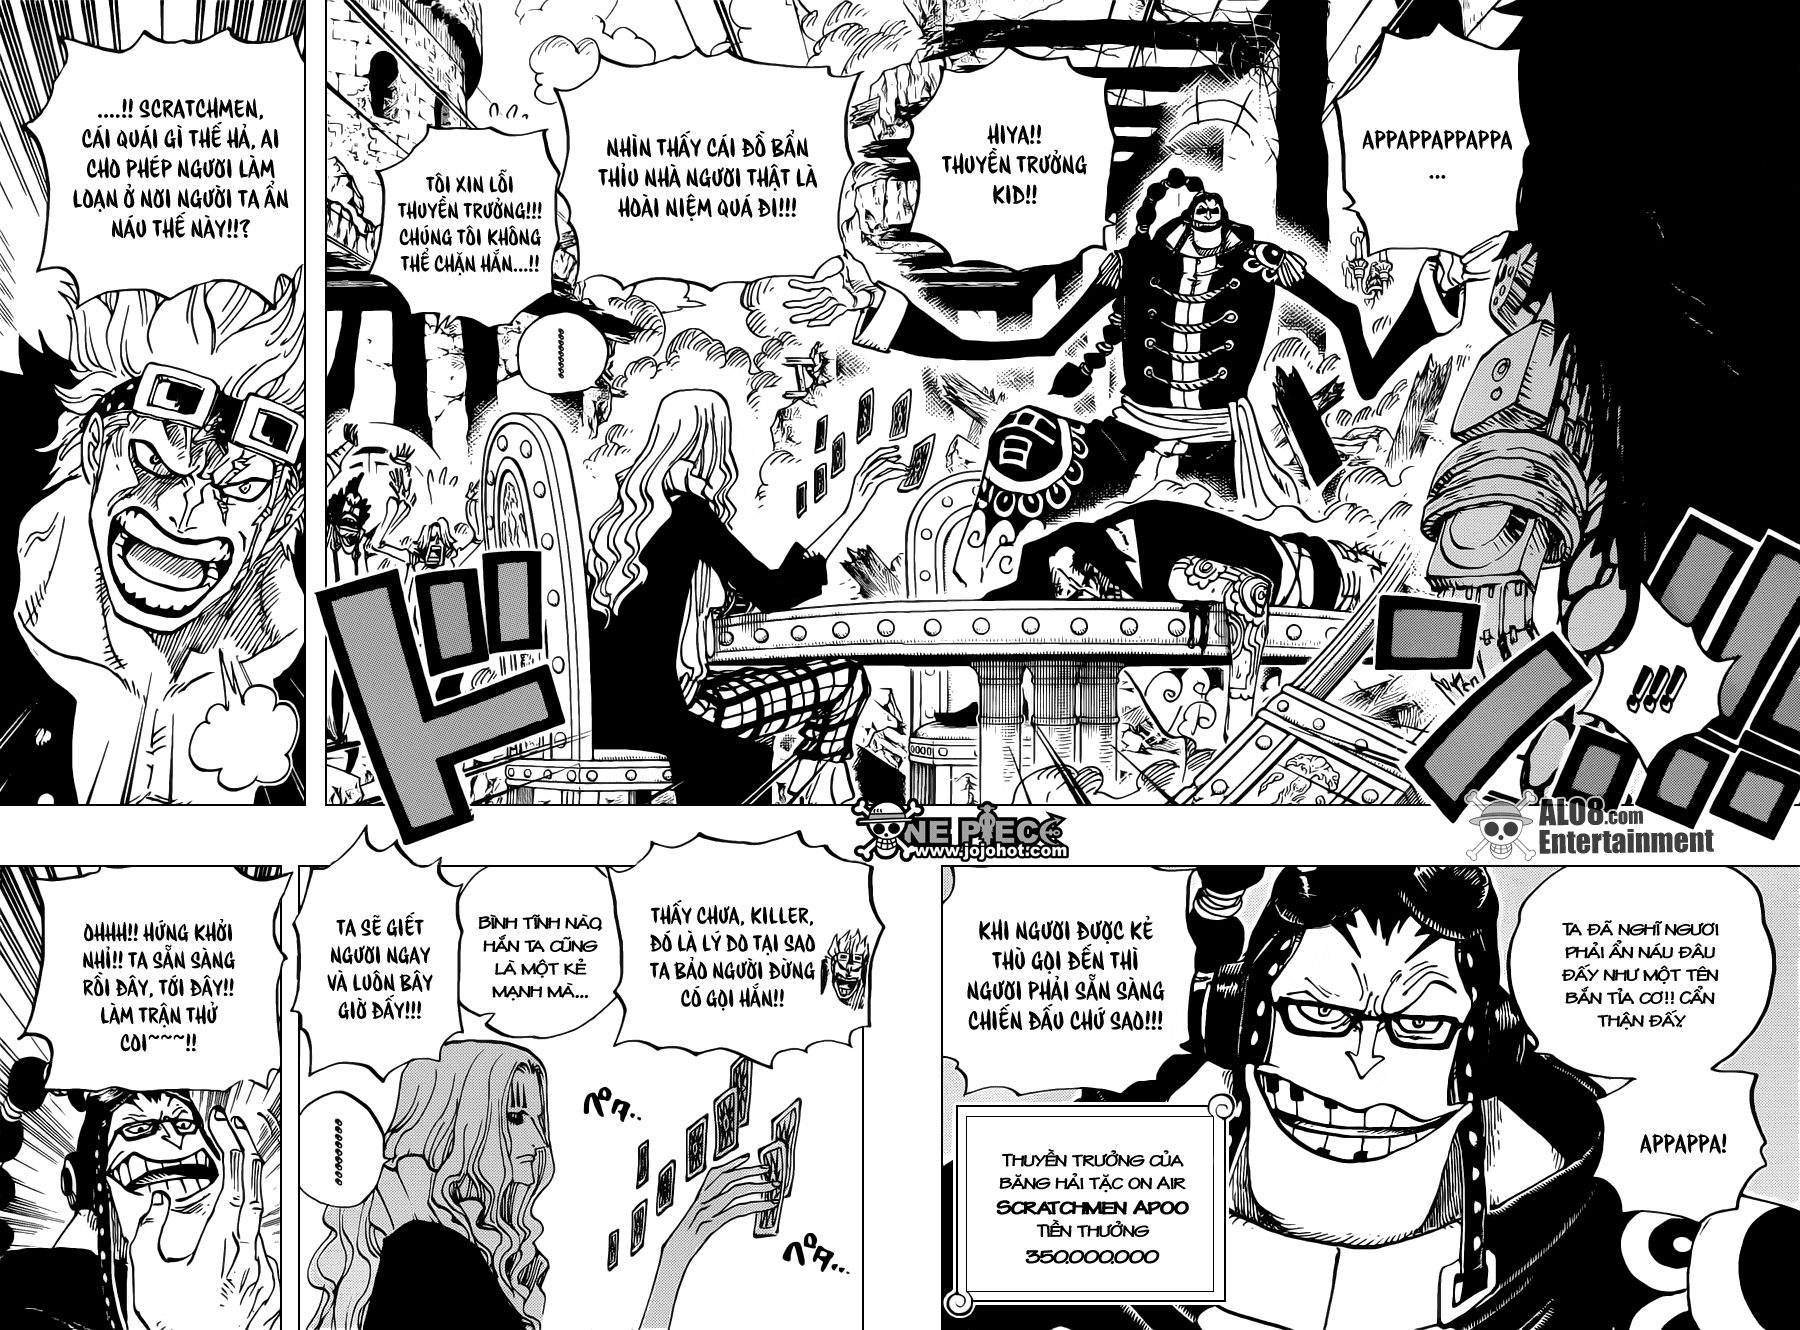 One Piece Chapter 677: Phản công ở Punk Hazard 004